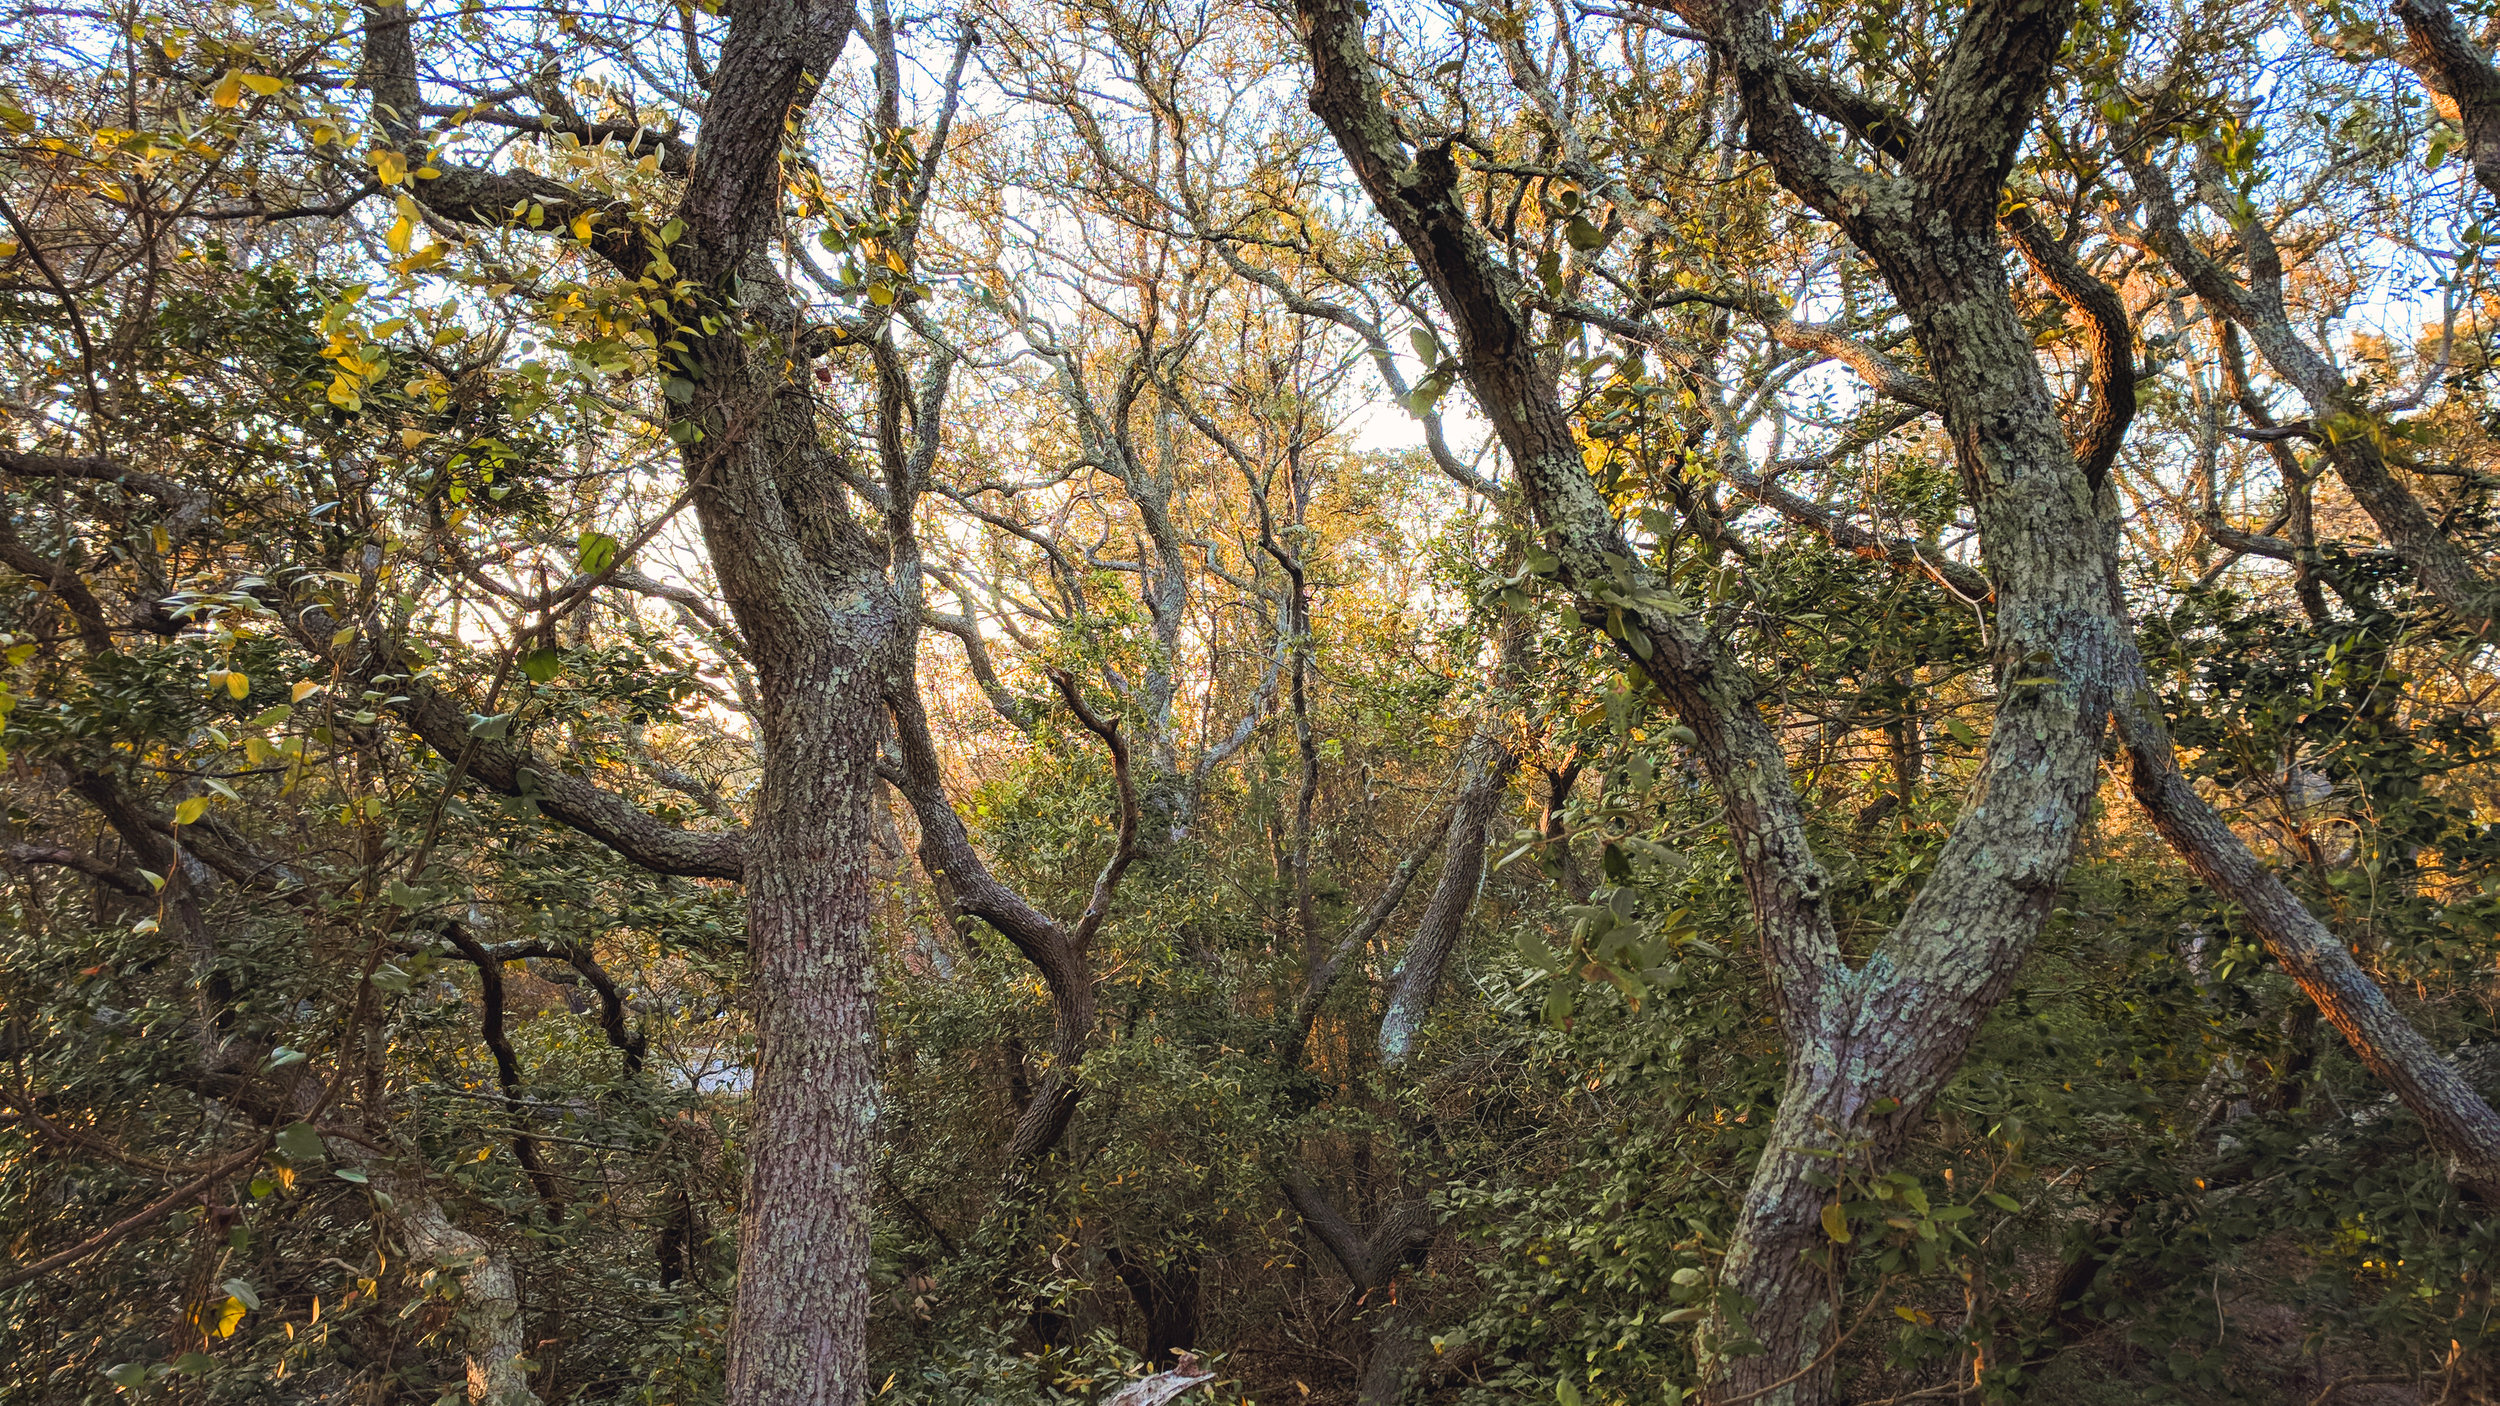 Just a few of the hundreds of Live Oak trees located atop the dunes.